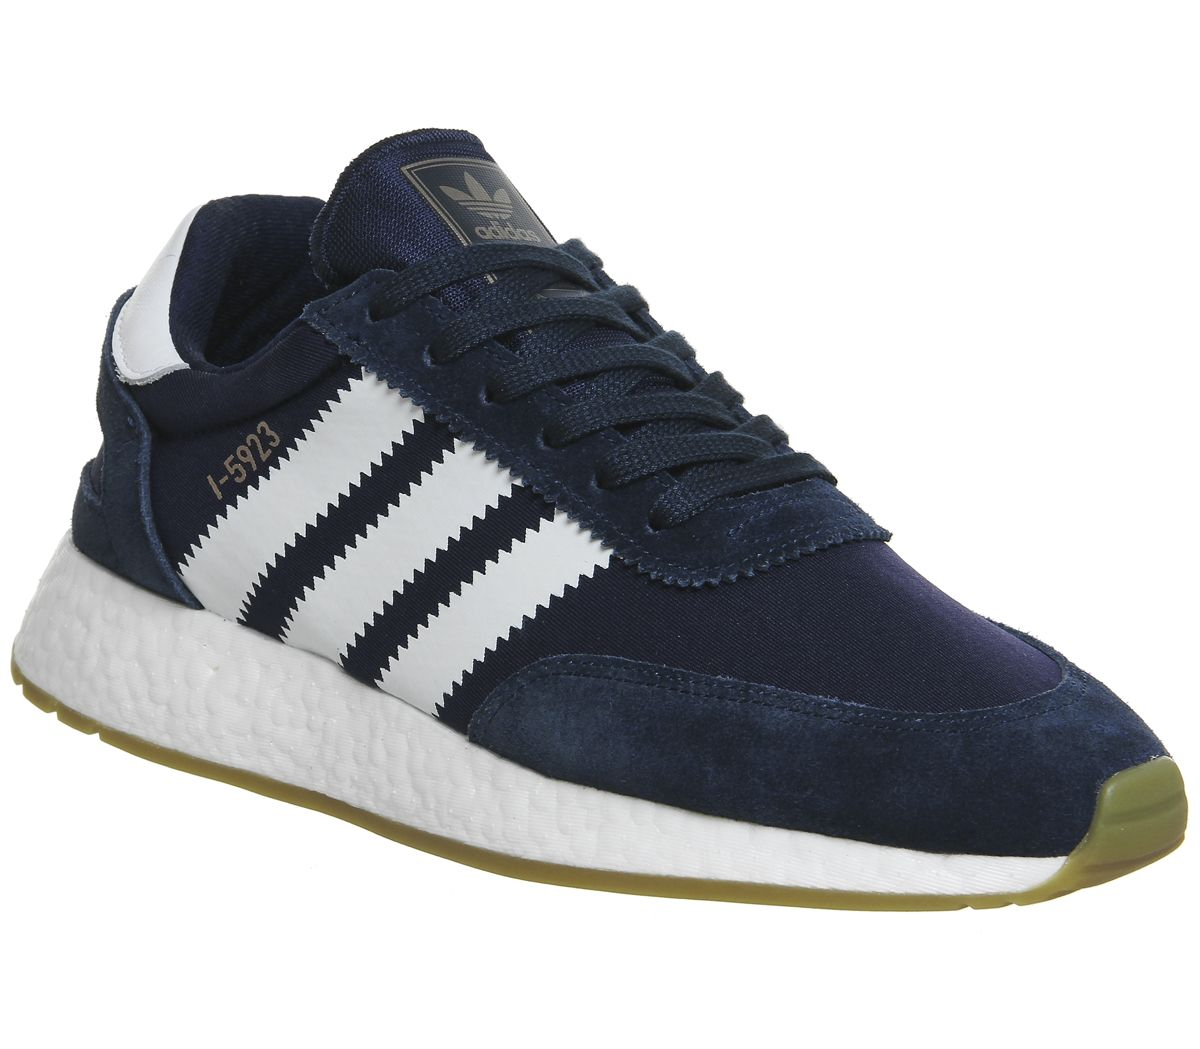 big sale fabb7 77162 adidas I-5923 Trainers Collegiate Navy Gum - Hers trainers